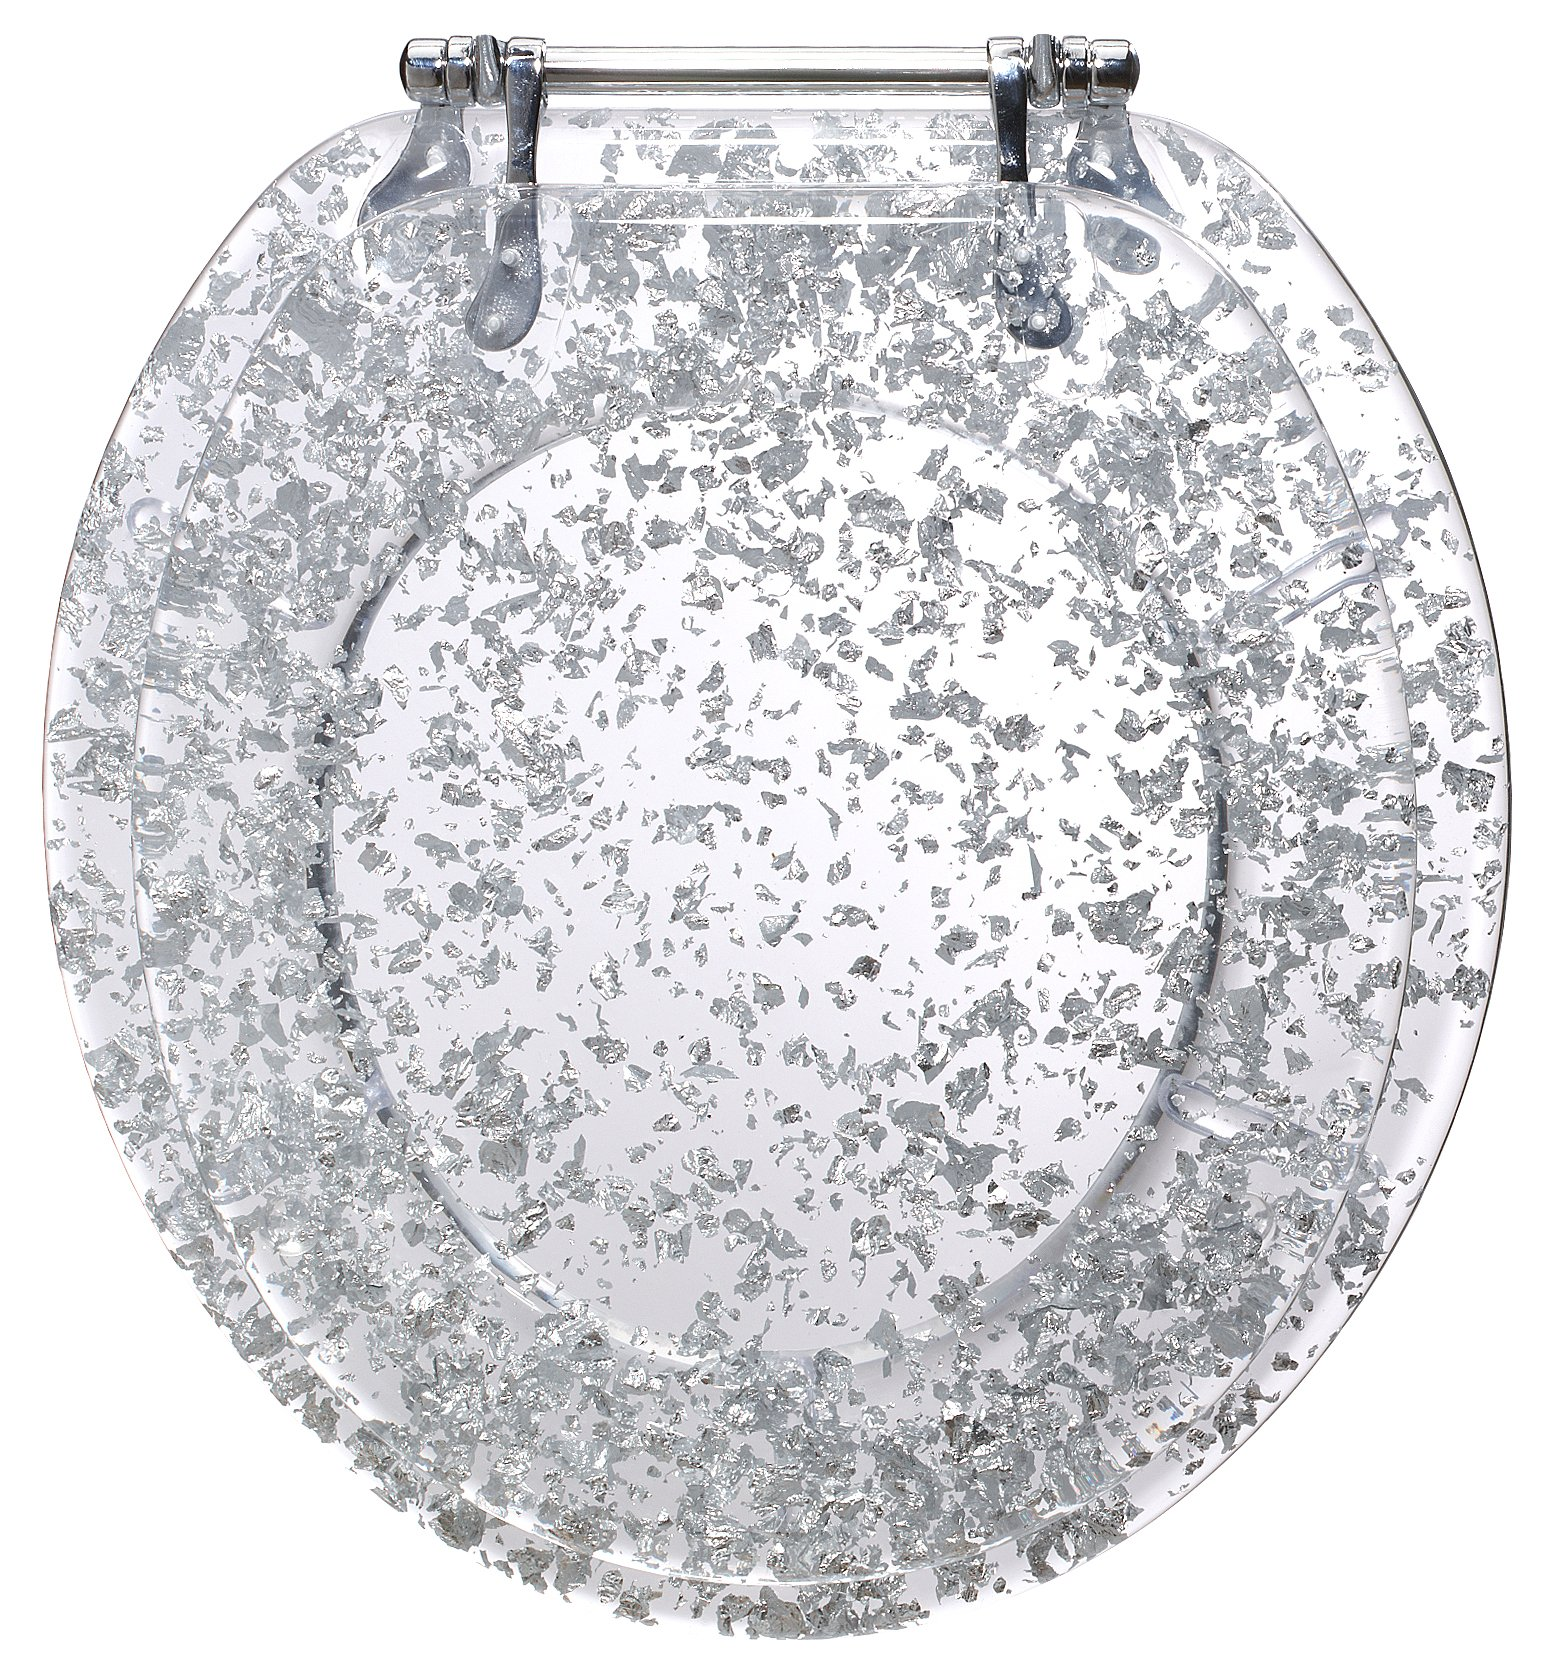 Ginsey Standard Resin Toilet Seat with Chrome Hinges, Silver Foil by Ginsey